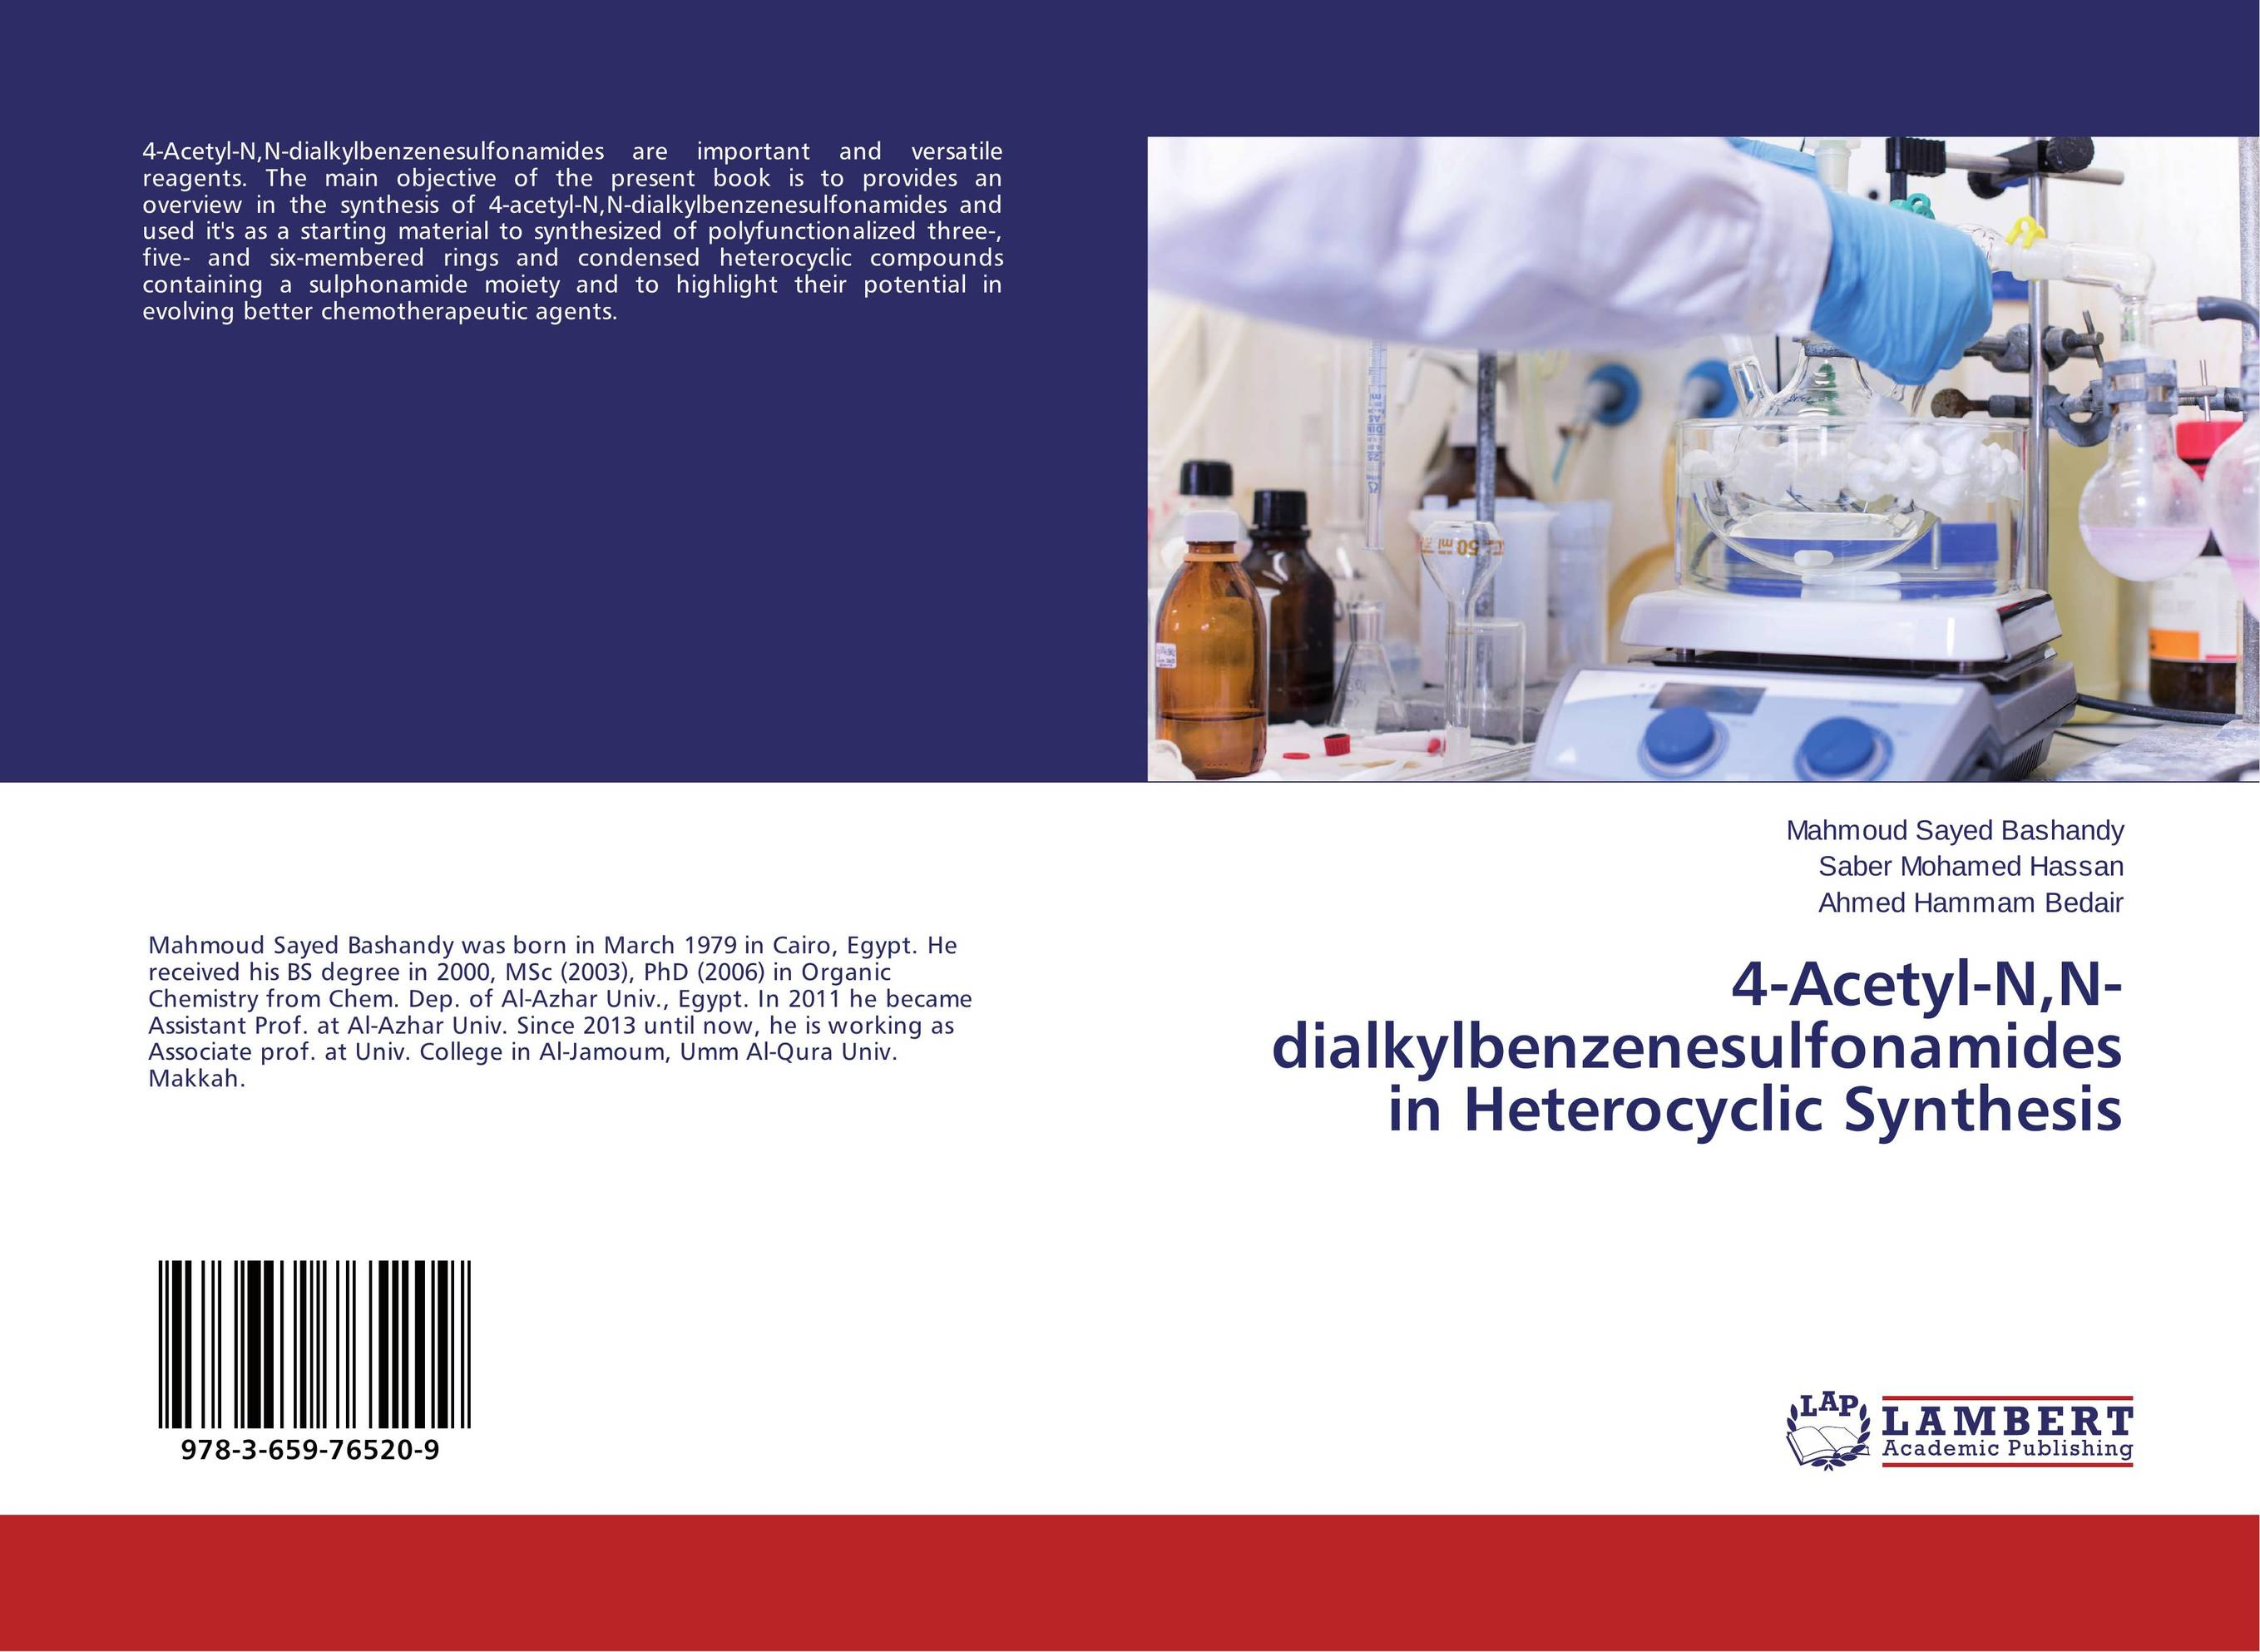 4-Acetyl-N,N-dialkylbenzenesulfonamides in Heterocyclic Synthesis novel arylpiperazines as anxiolytic agents synthesis and sar